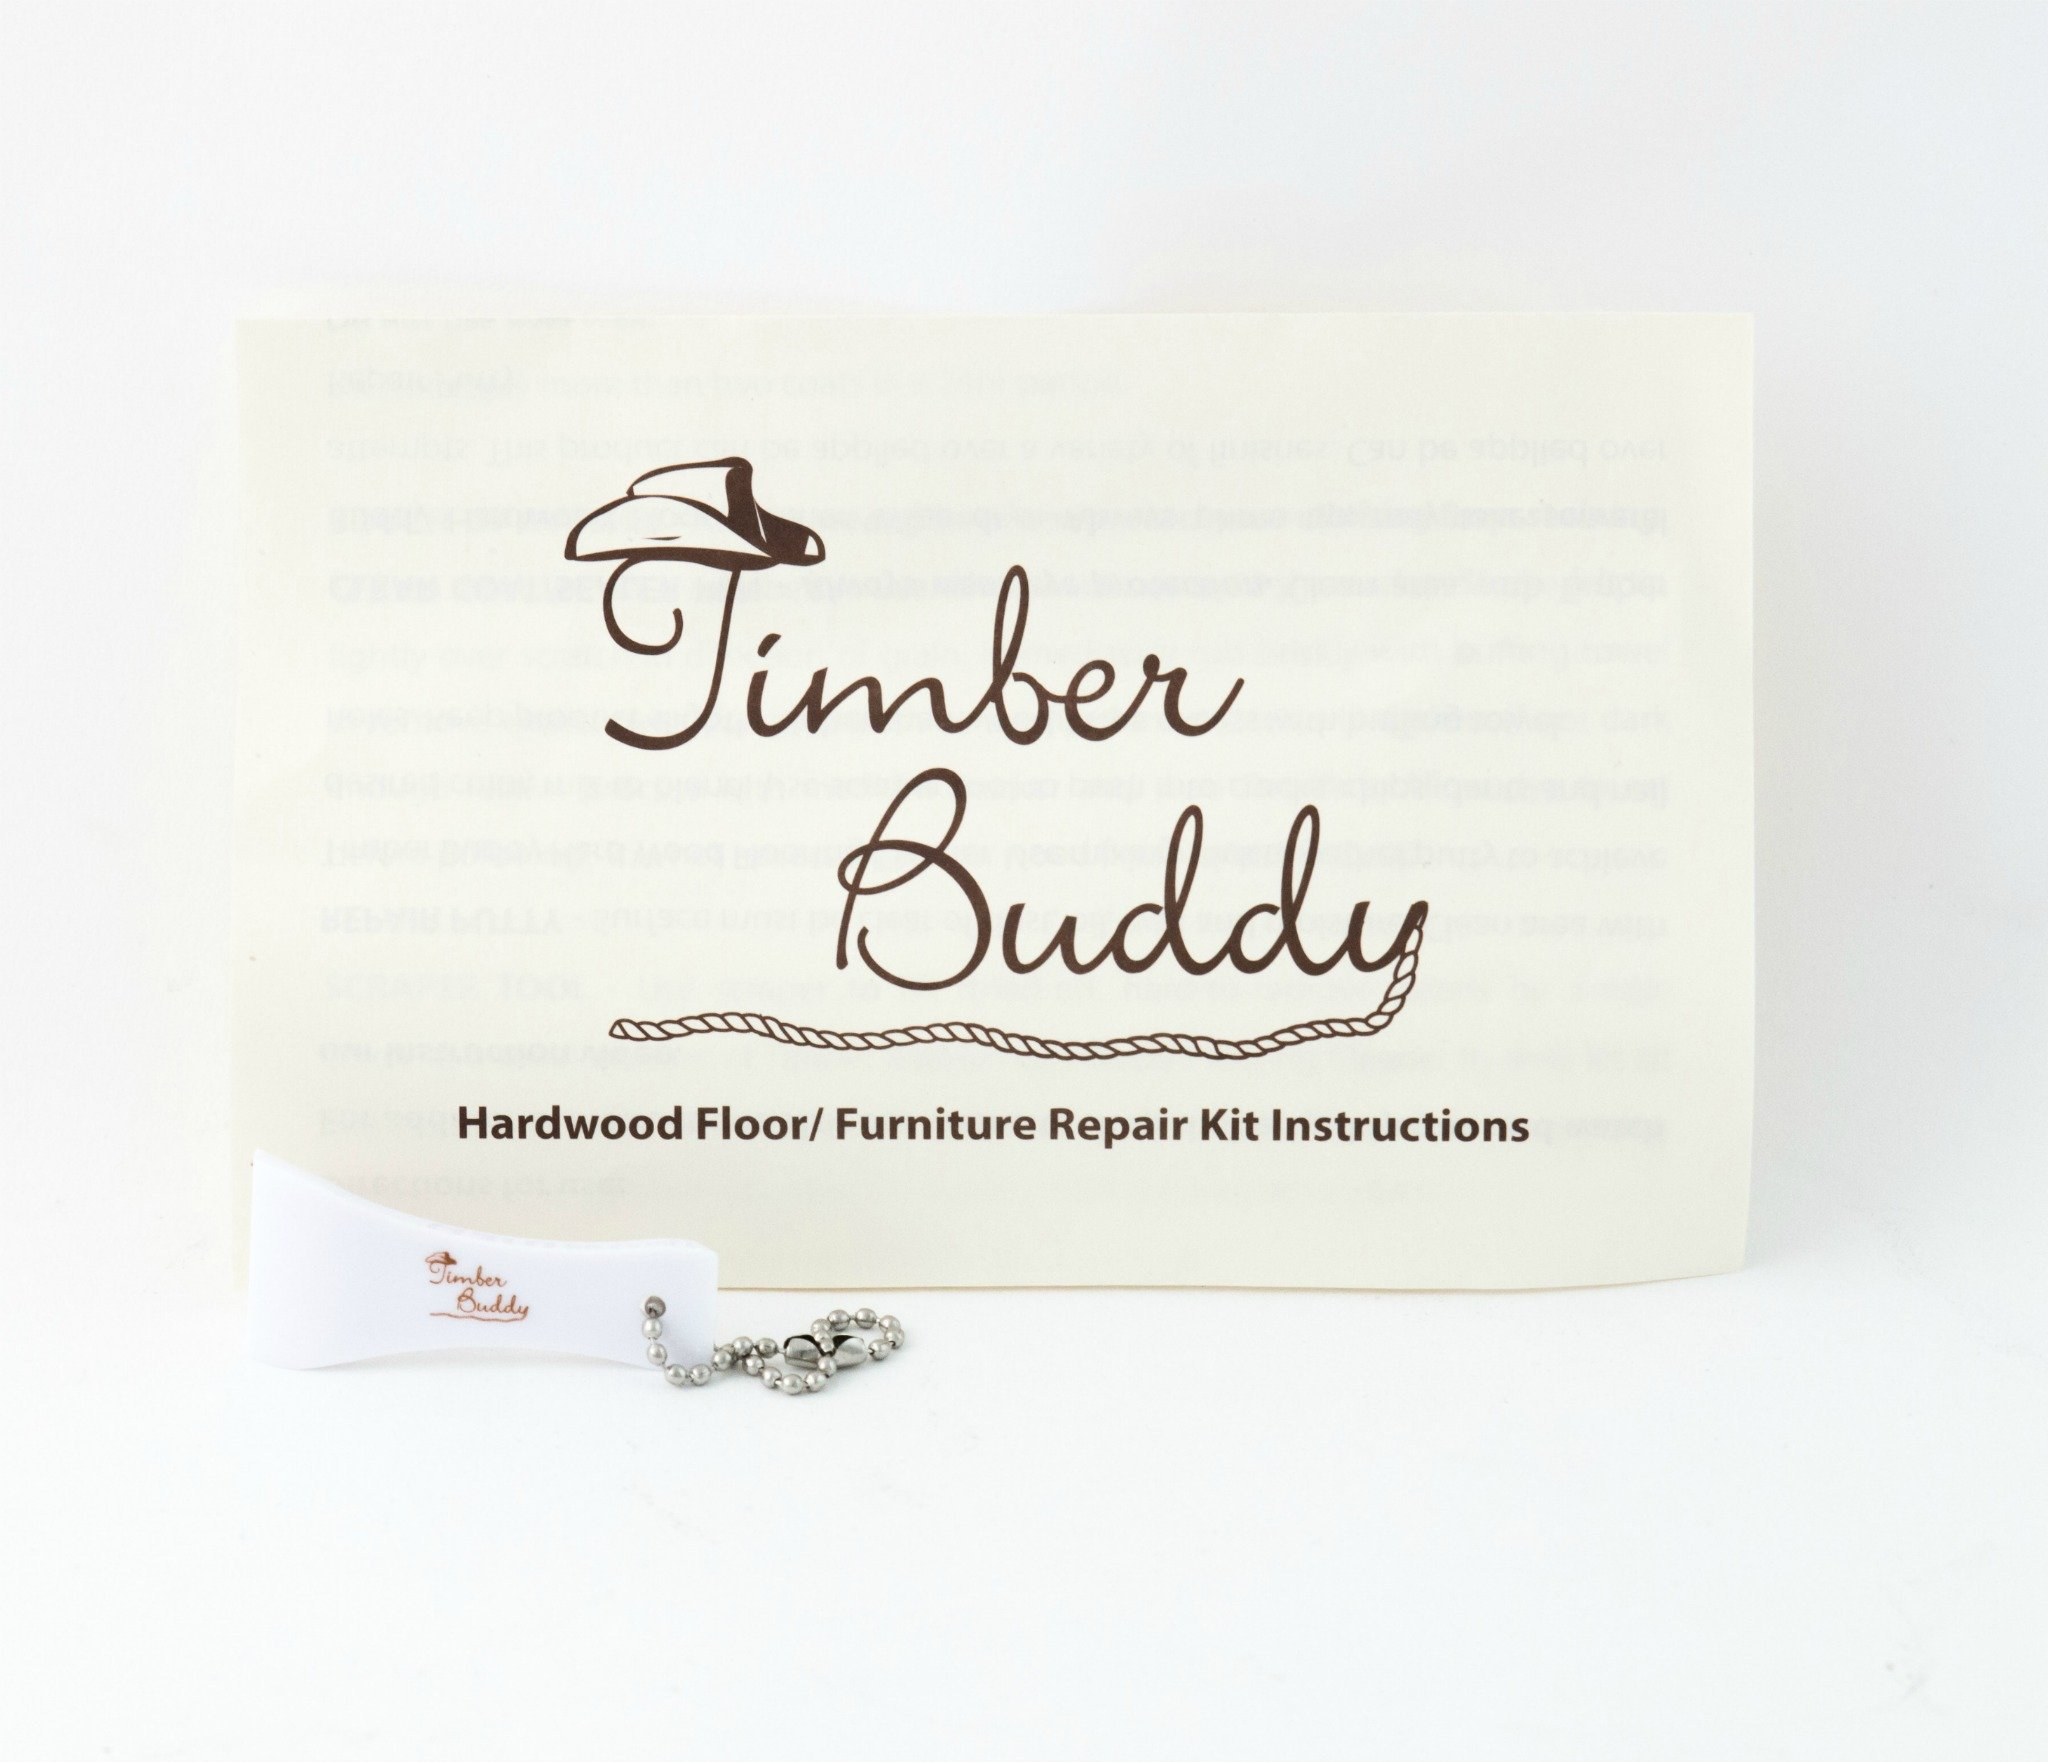 Hardwood Floor Cabinet Furniture Island Staircase Molding Cleaner Touch-Up Repair Kit 1 Product Home Office RV Pick Your Finish All Wood Surfaces Laminate Pre-Finished Veneers Restore Luster Nutrients by Timber Buddy (Image #6)